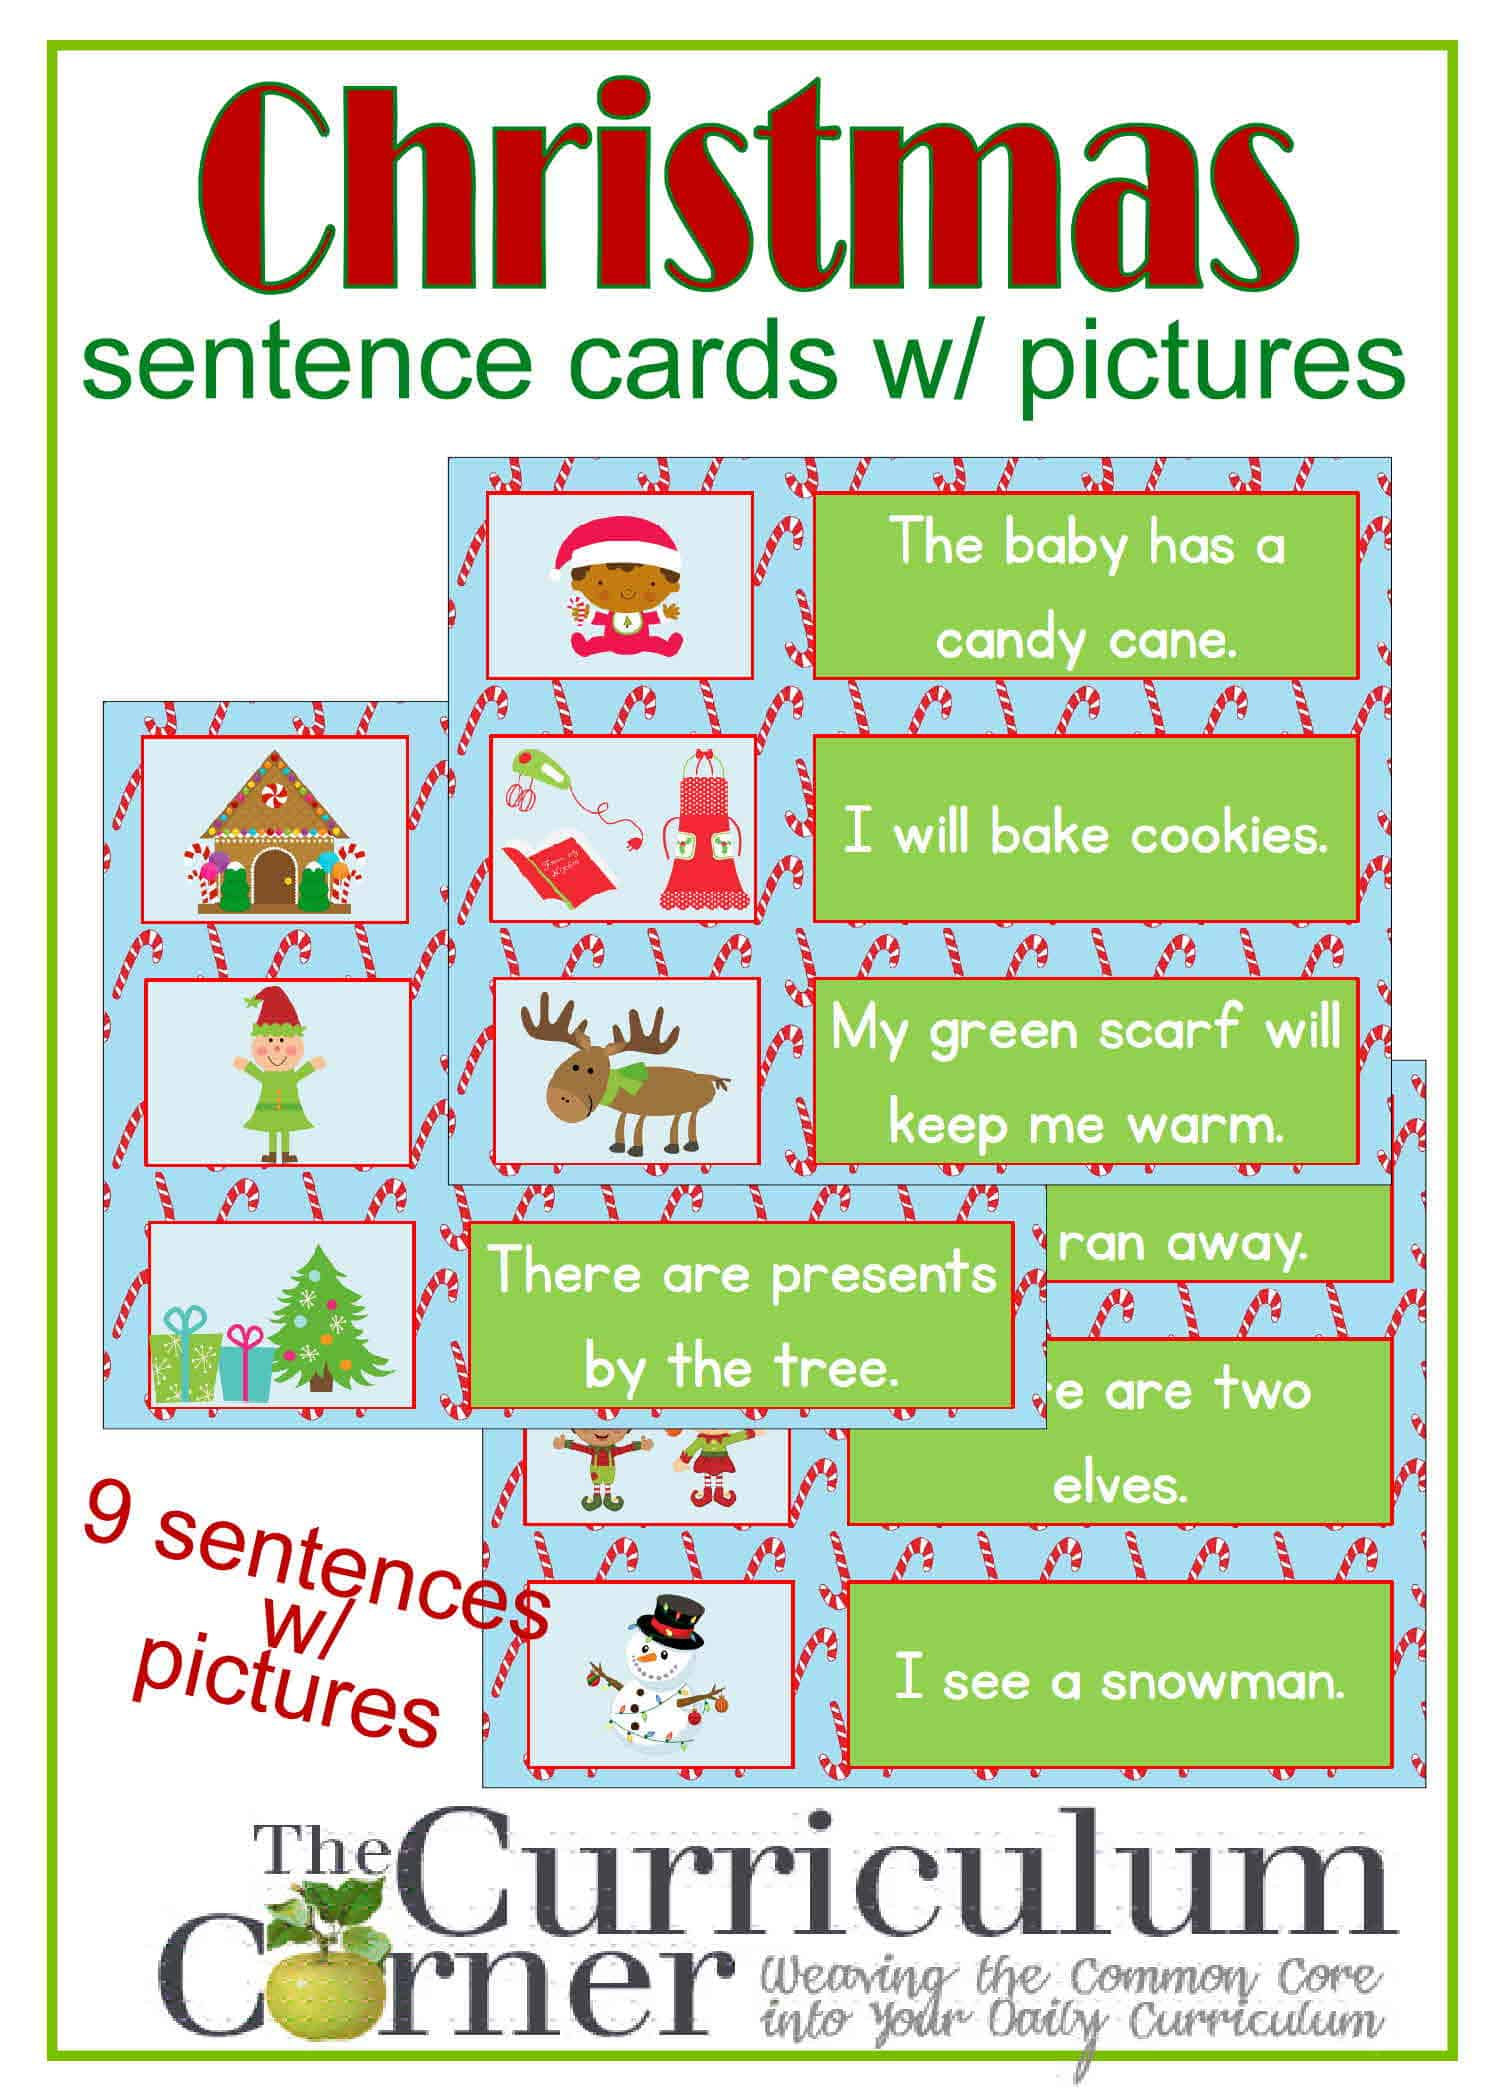 Christmas Sentence Cards w/ Pictures